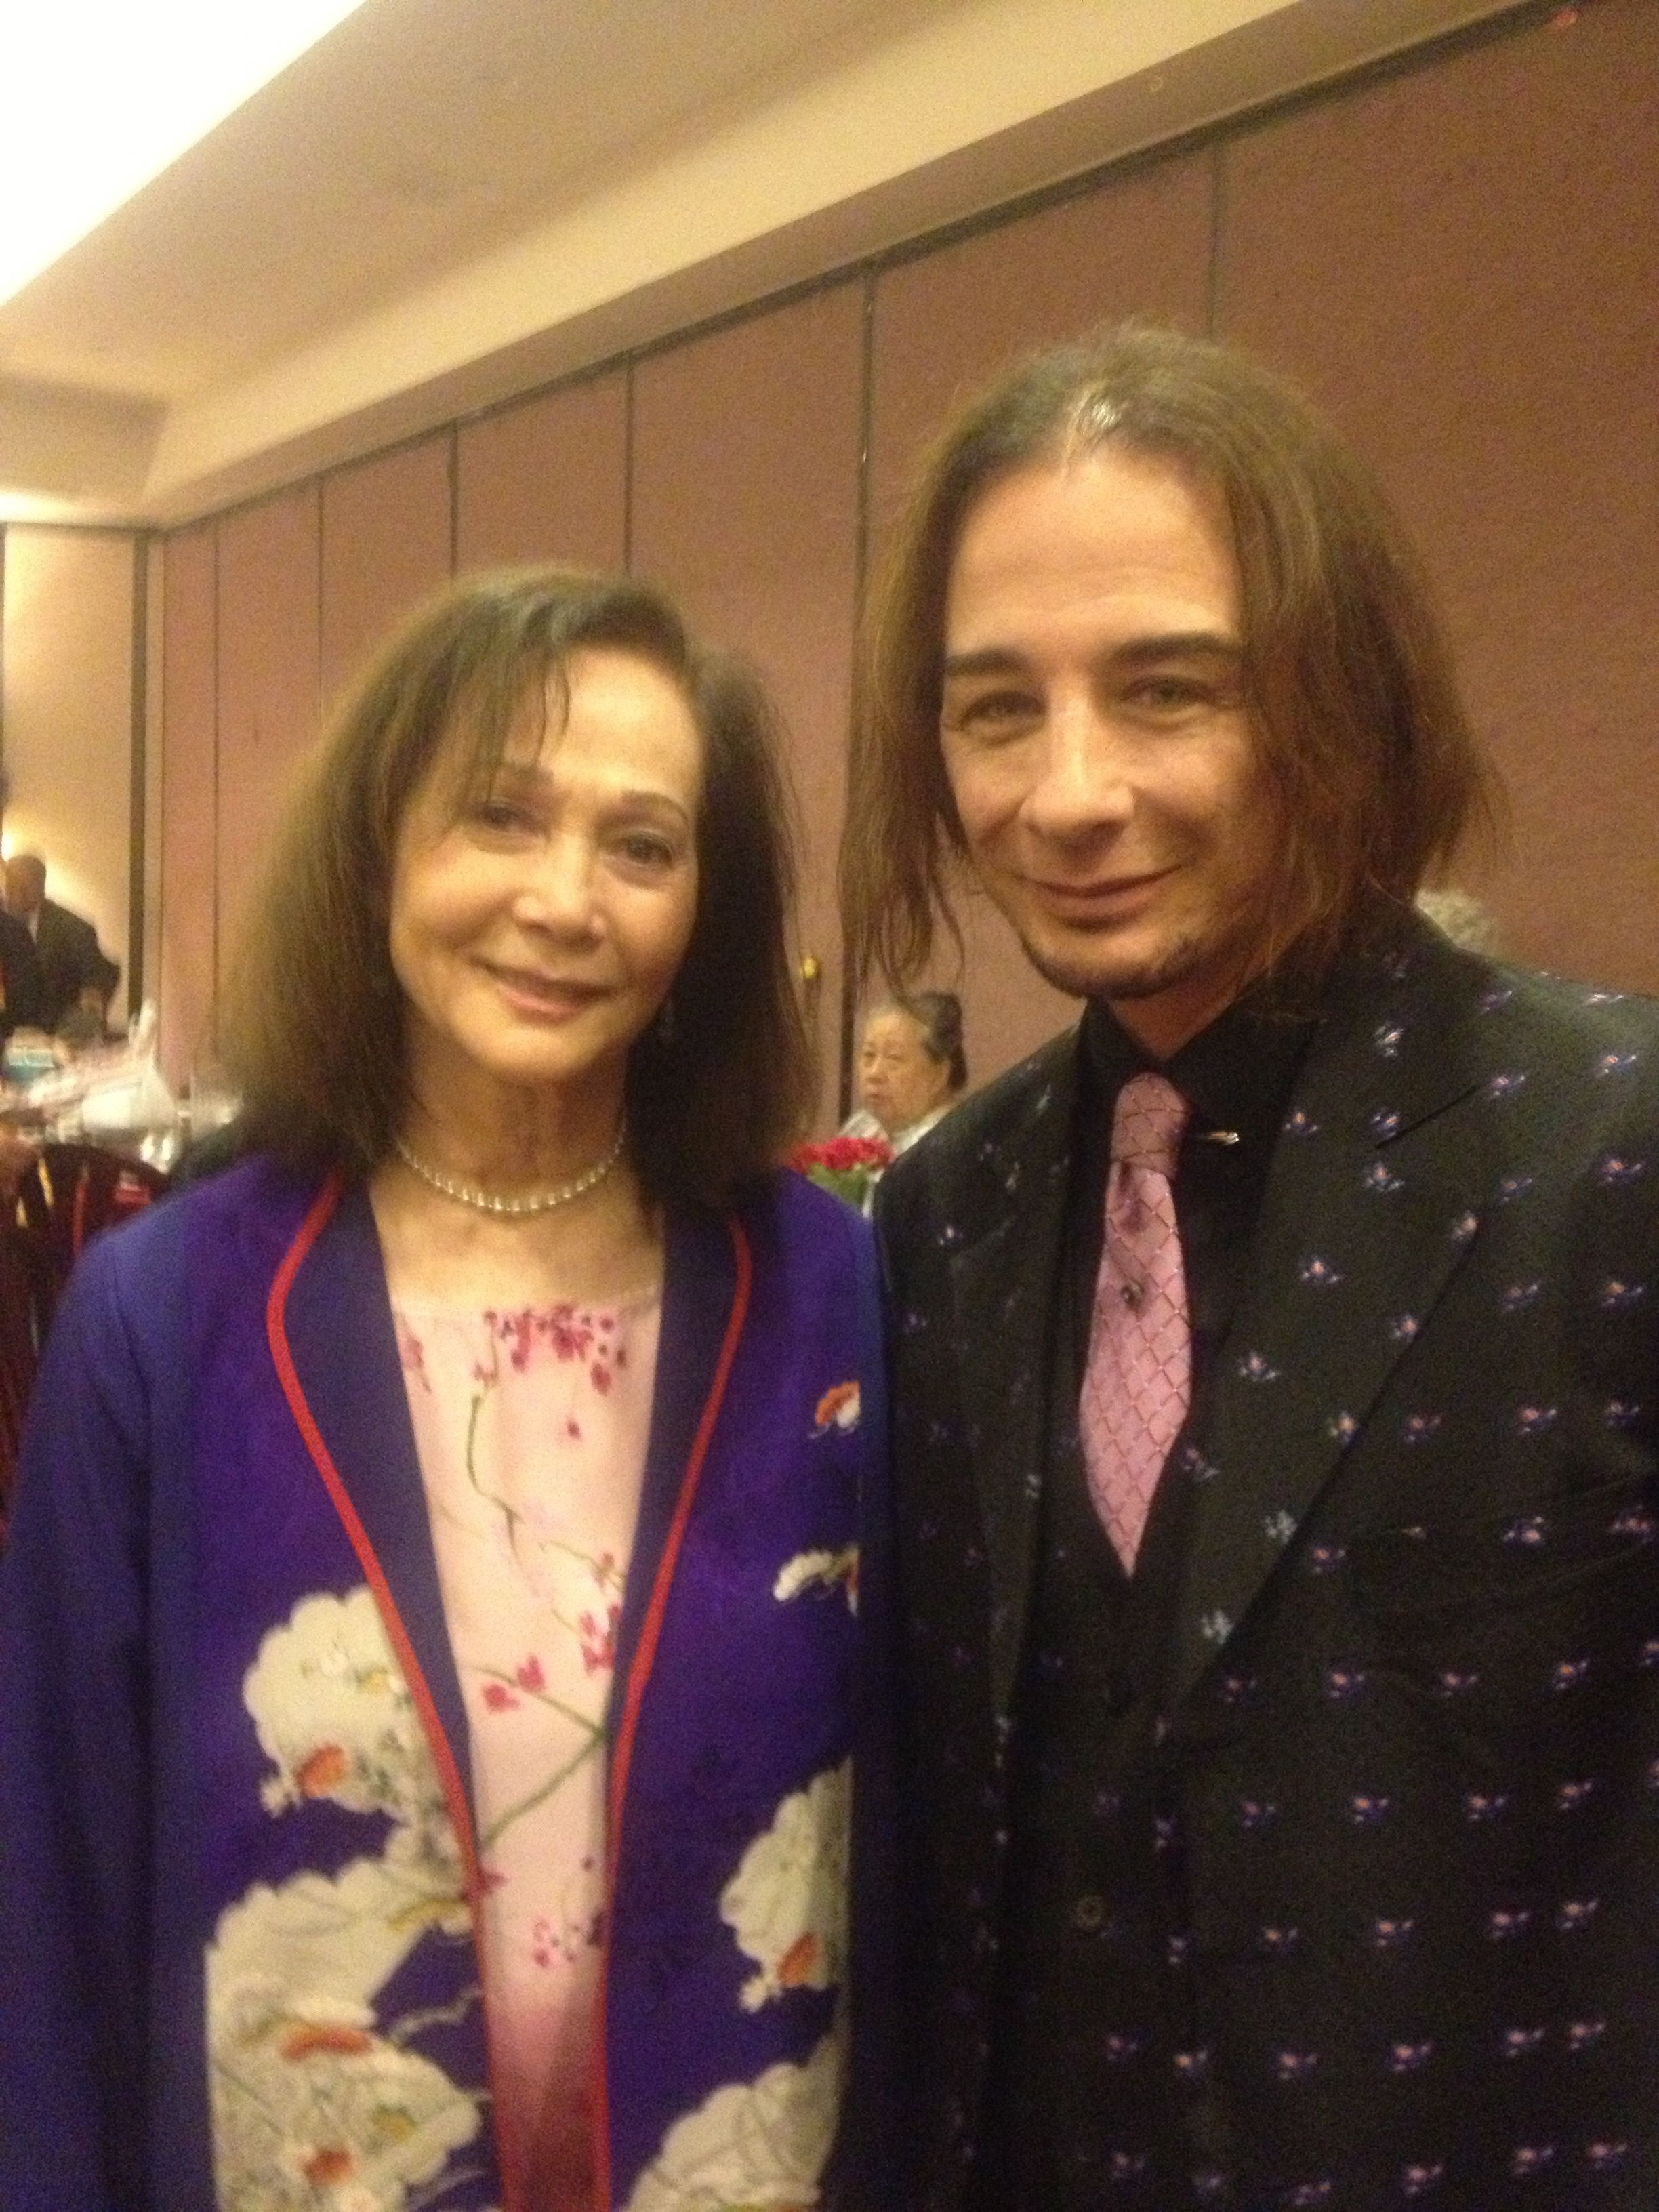 Bad Hair day!!!This is the famous Actress Nancy Kwan who